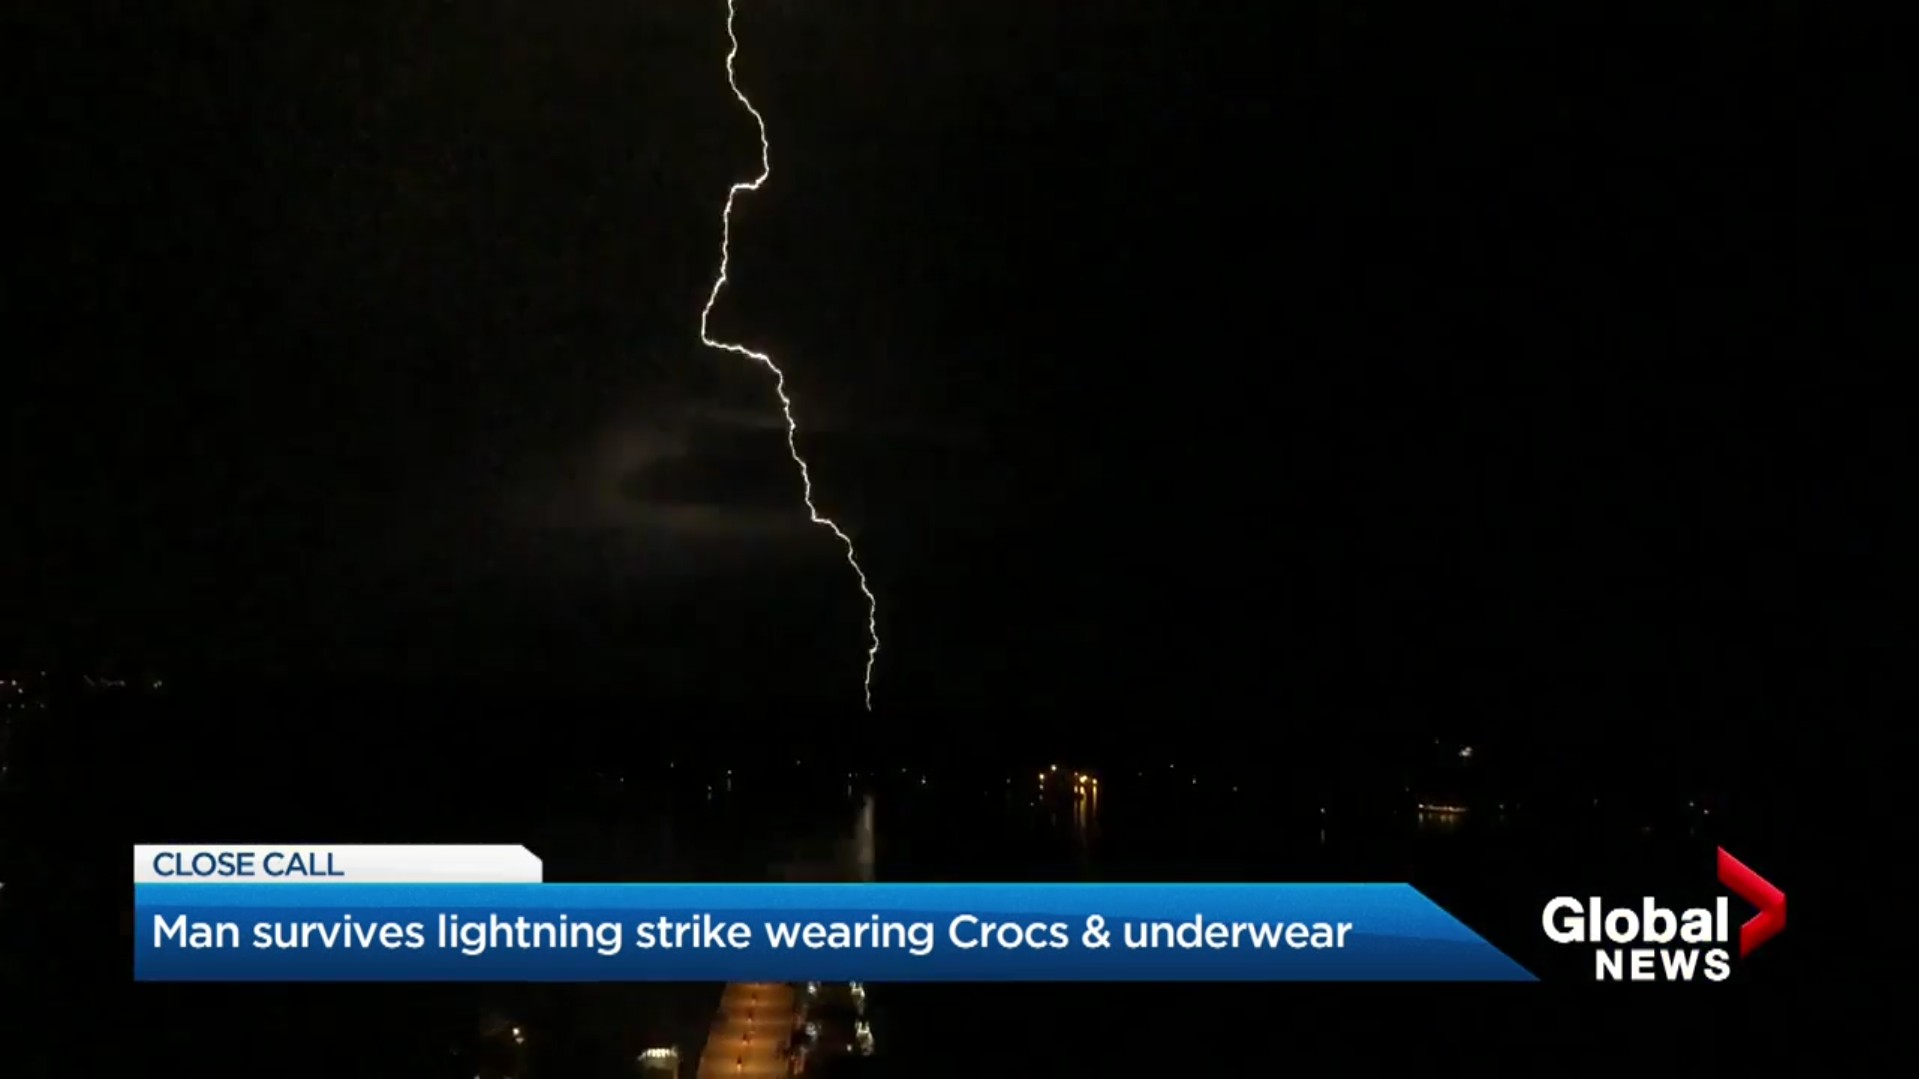 Man survives lightning strike wearing Crocs & underwear